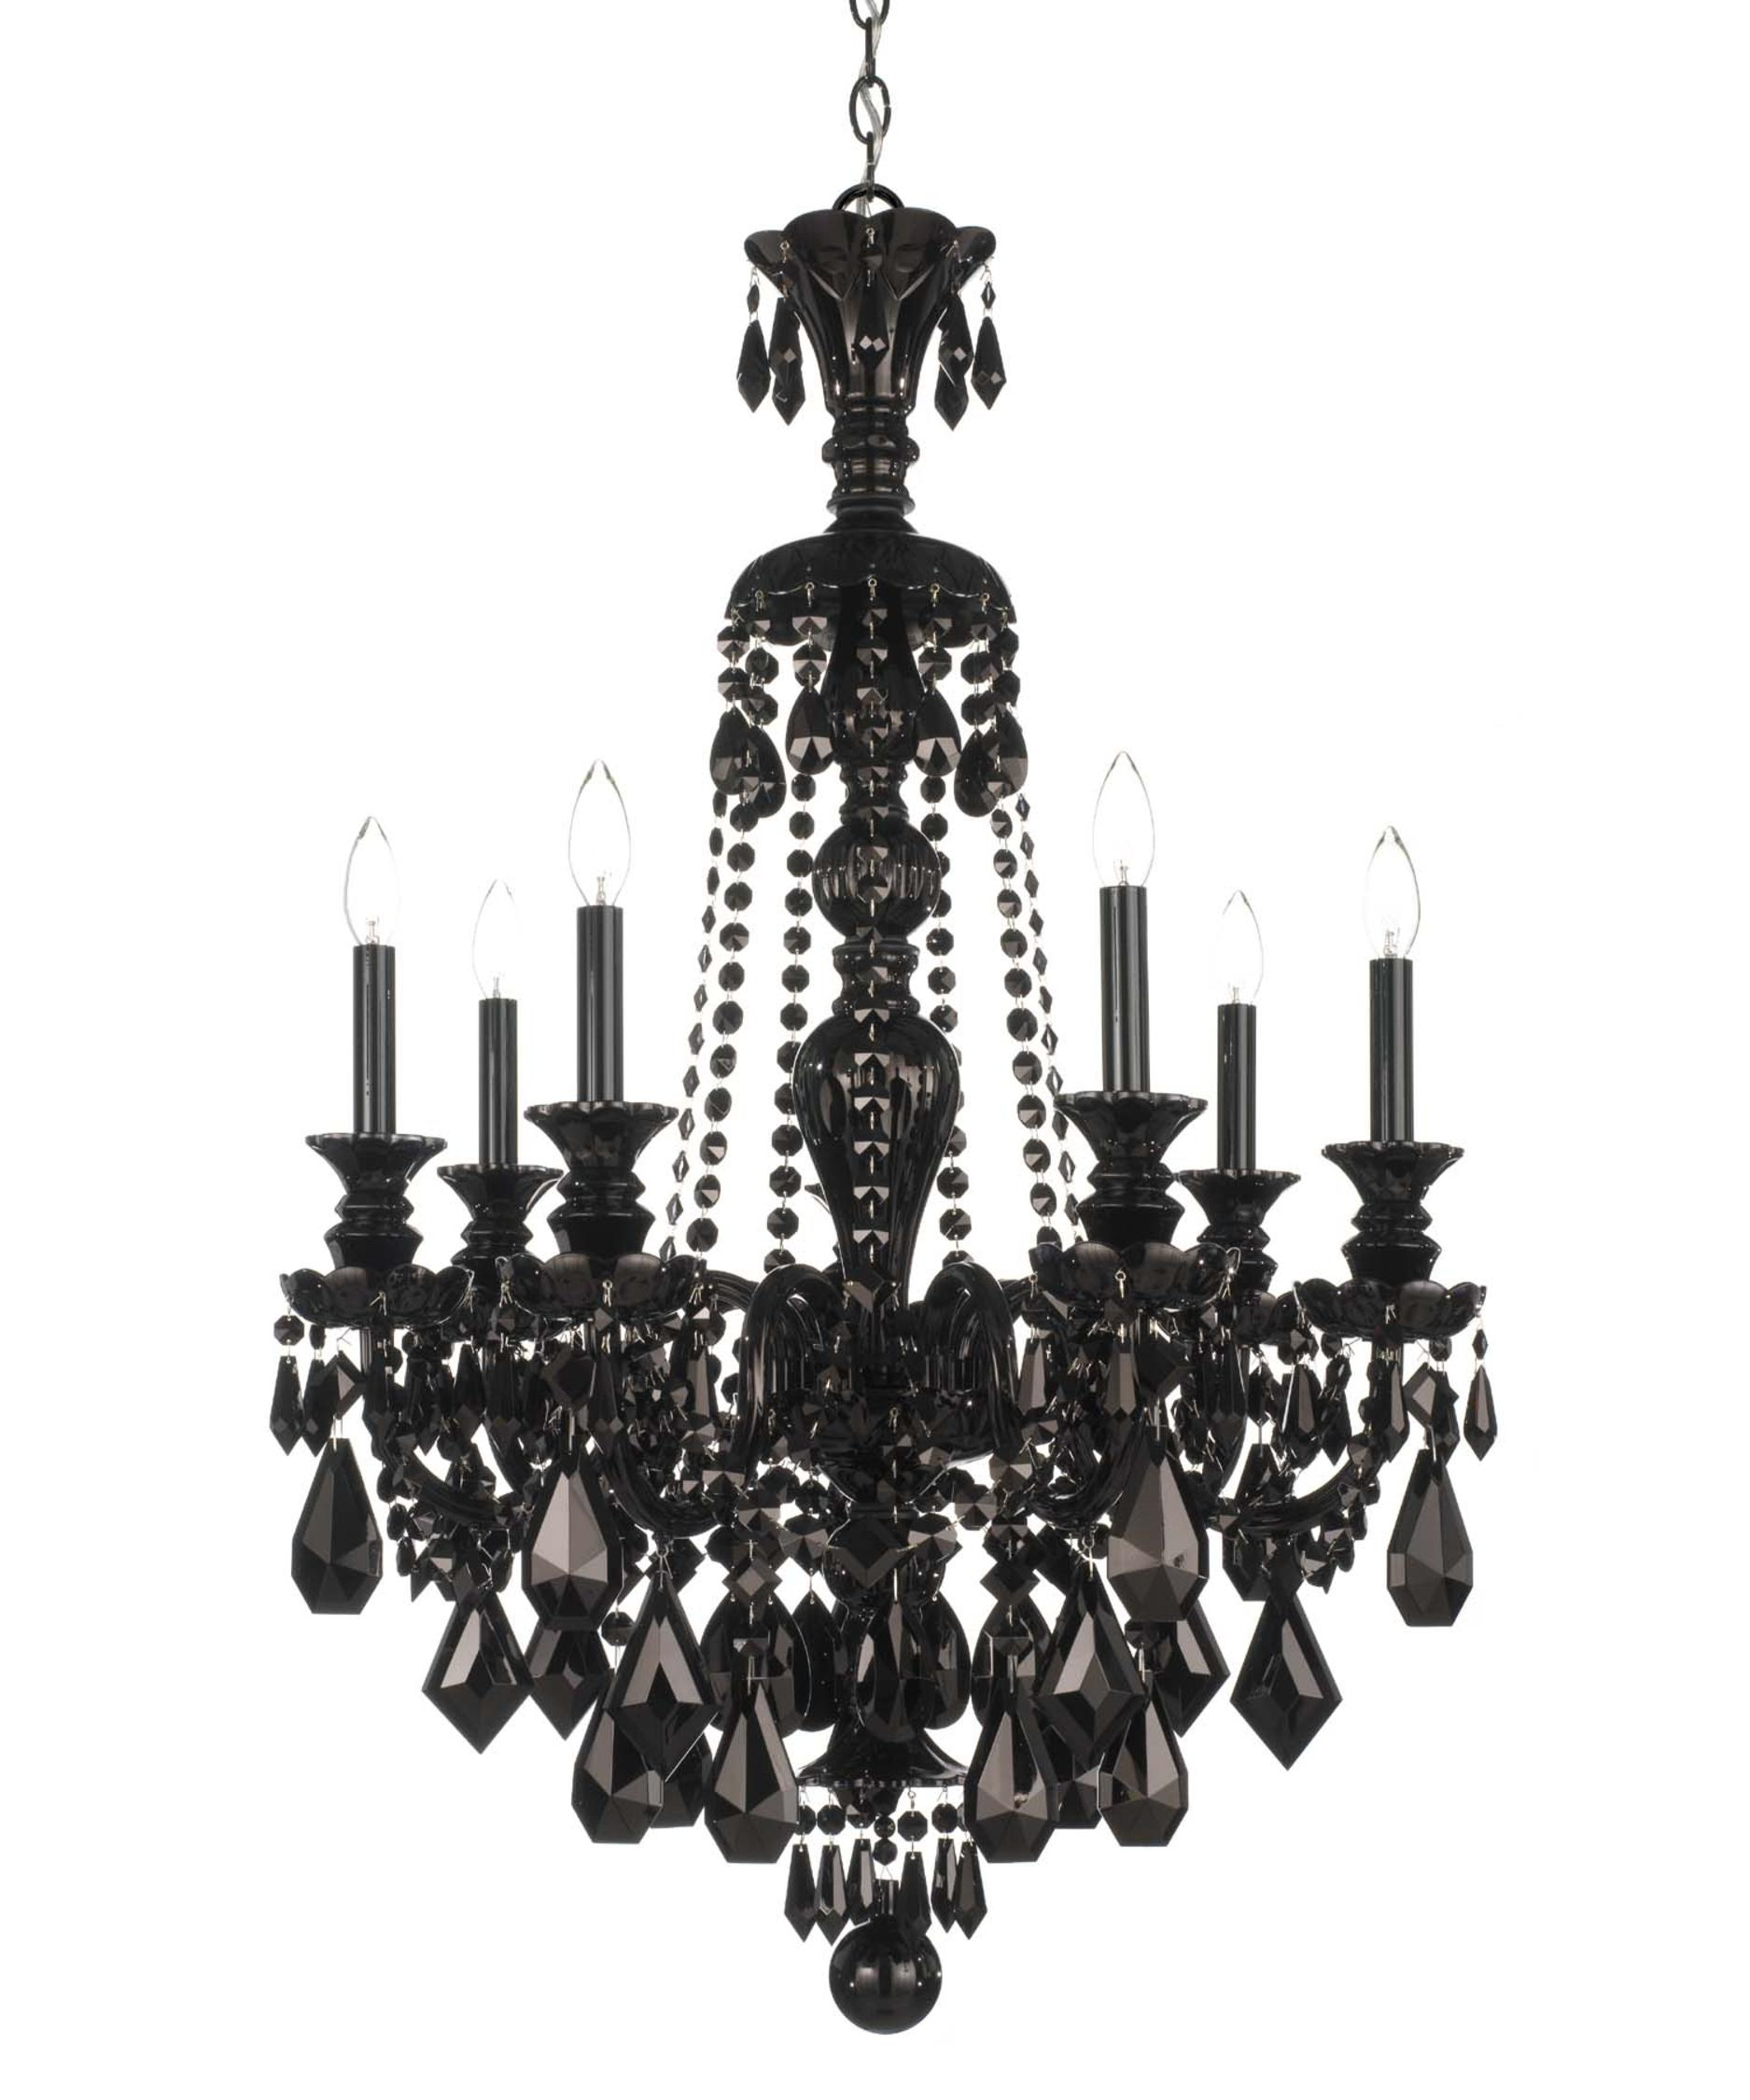 Schonbek 5706bk Hamilton Black 26 Inch Wide 7 Light Chandelier For Black Chandelier (Image 12 of 15)